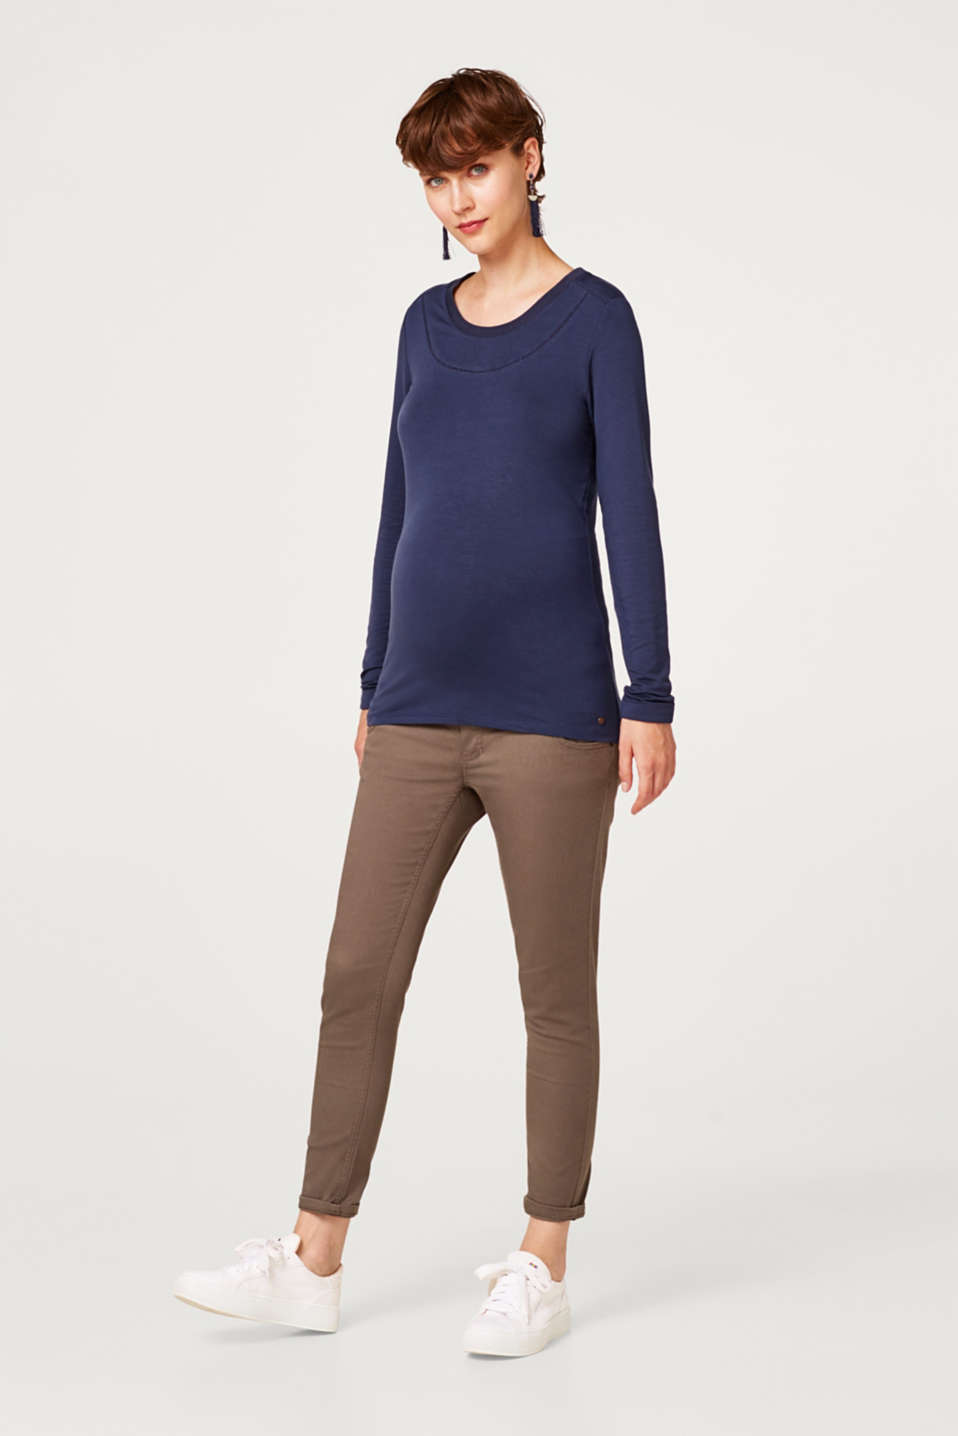 Stretch long sleeve top with open-work pattern trims, LCNIGHT BLUE, detail image number 1